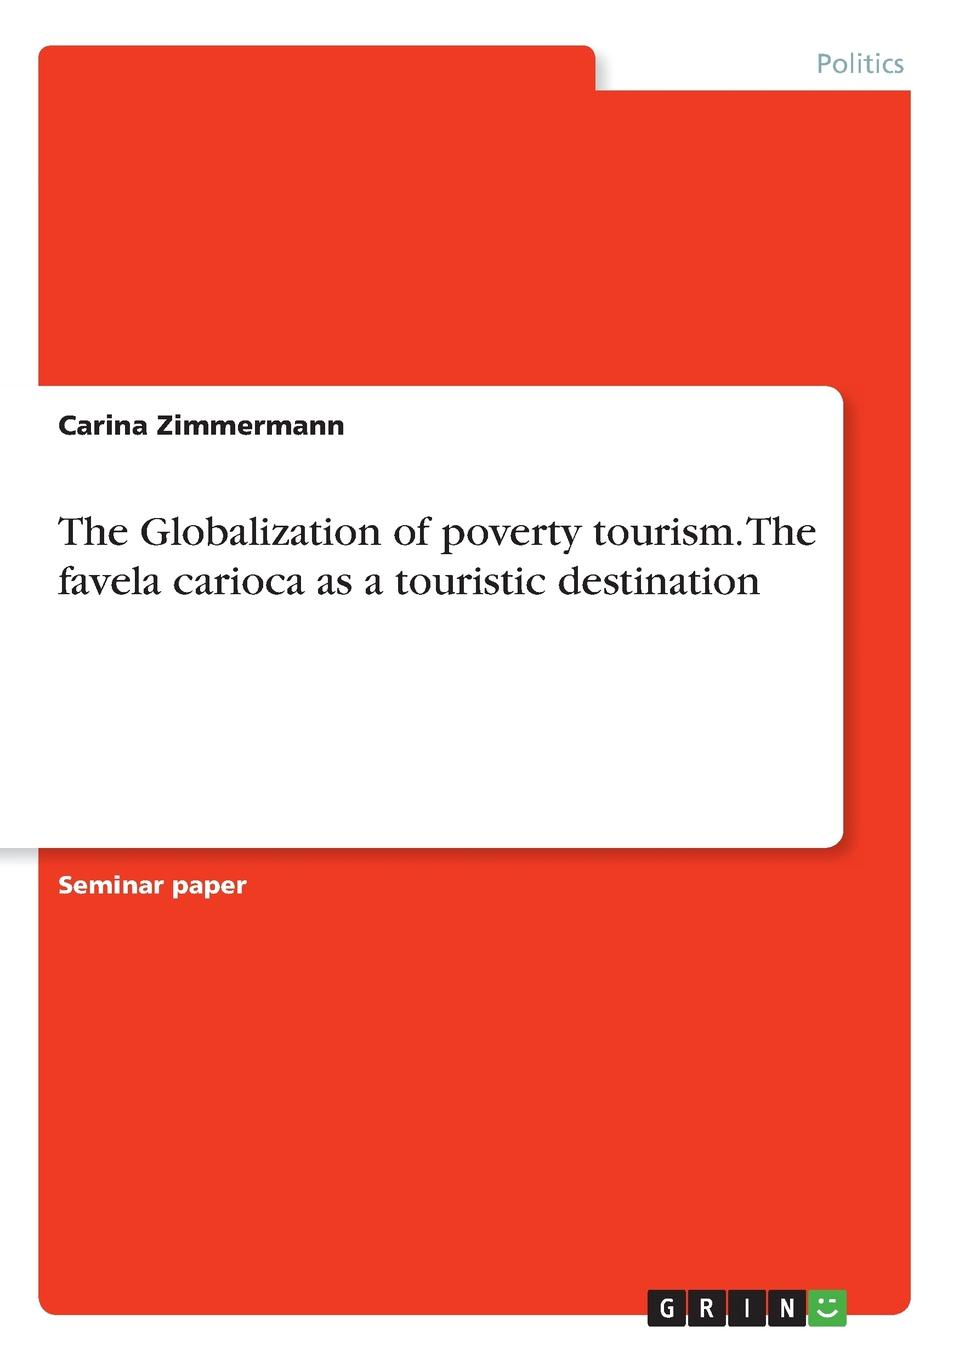 Carina Zimmermann The Globalization of poverty tourism. The favela carioca as a touristic destination eric zuelow a history of modern tourism